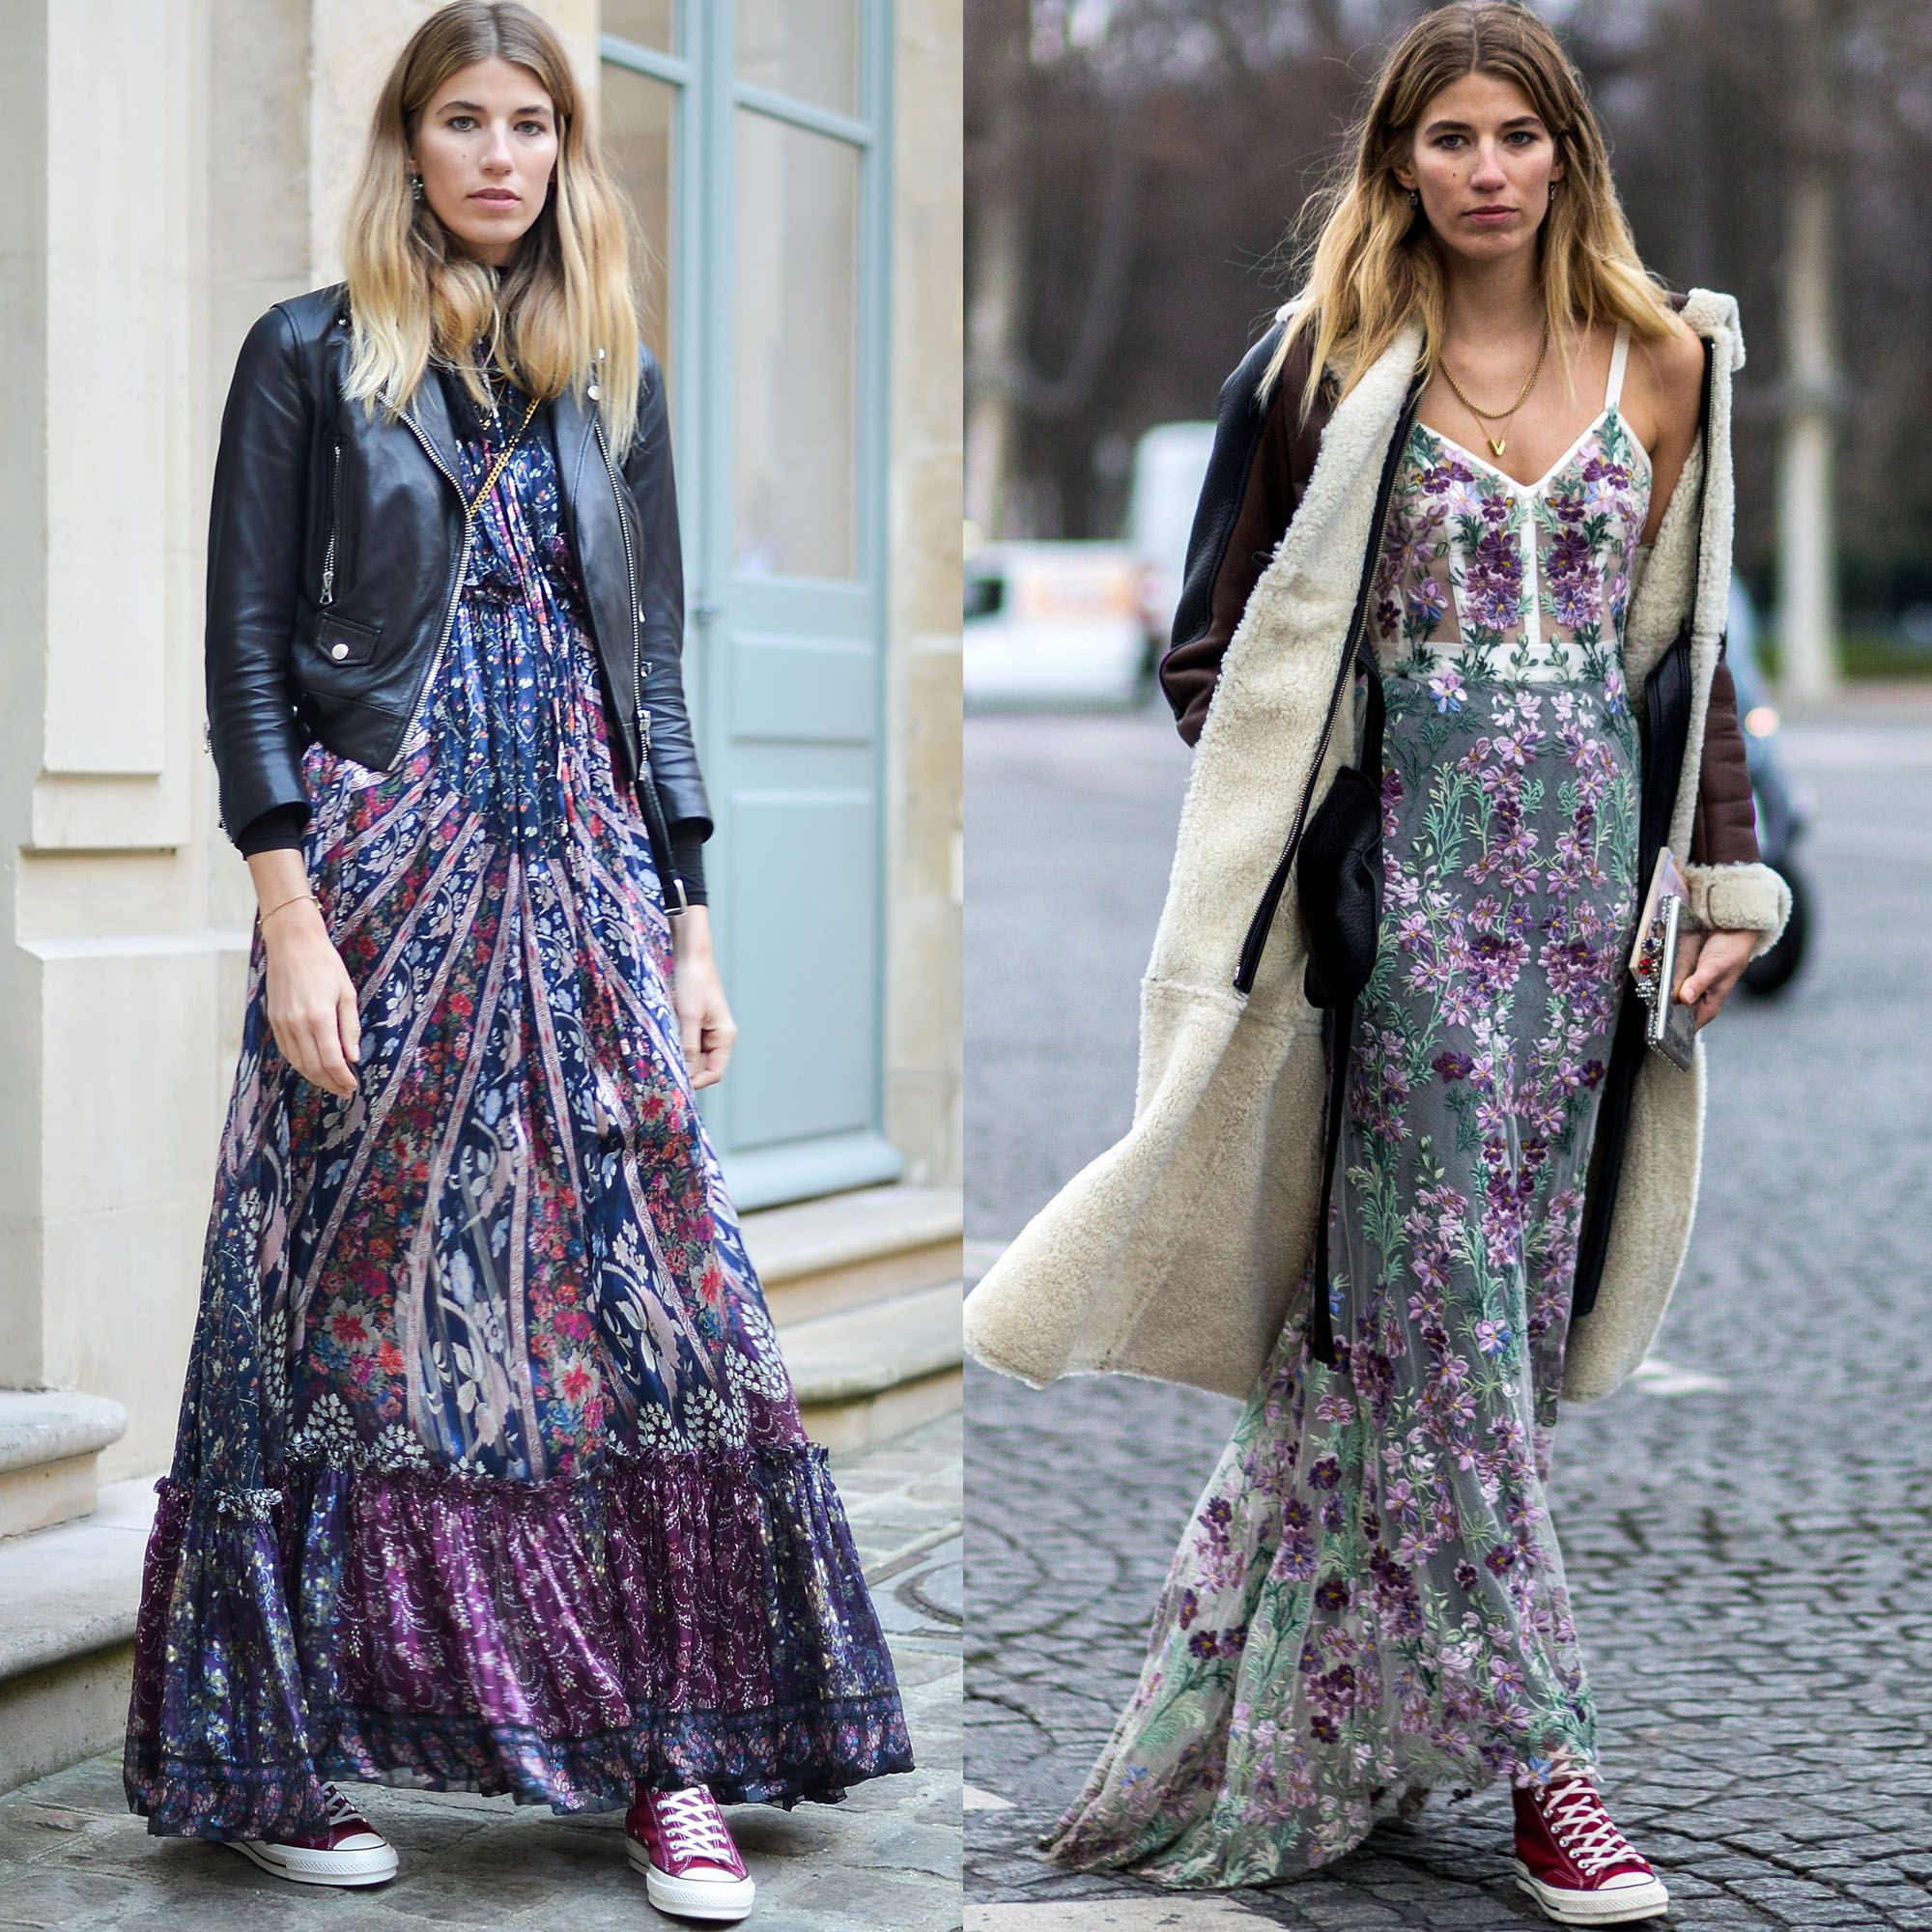 <p>Note Veronika Heilbrunner's (basically) entire wardrobe as your mood board for a modern take on grunge. Floaty floral dresses, check. Worn-in Cons, check. Tough-girl jackets, check and check. </p>